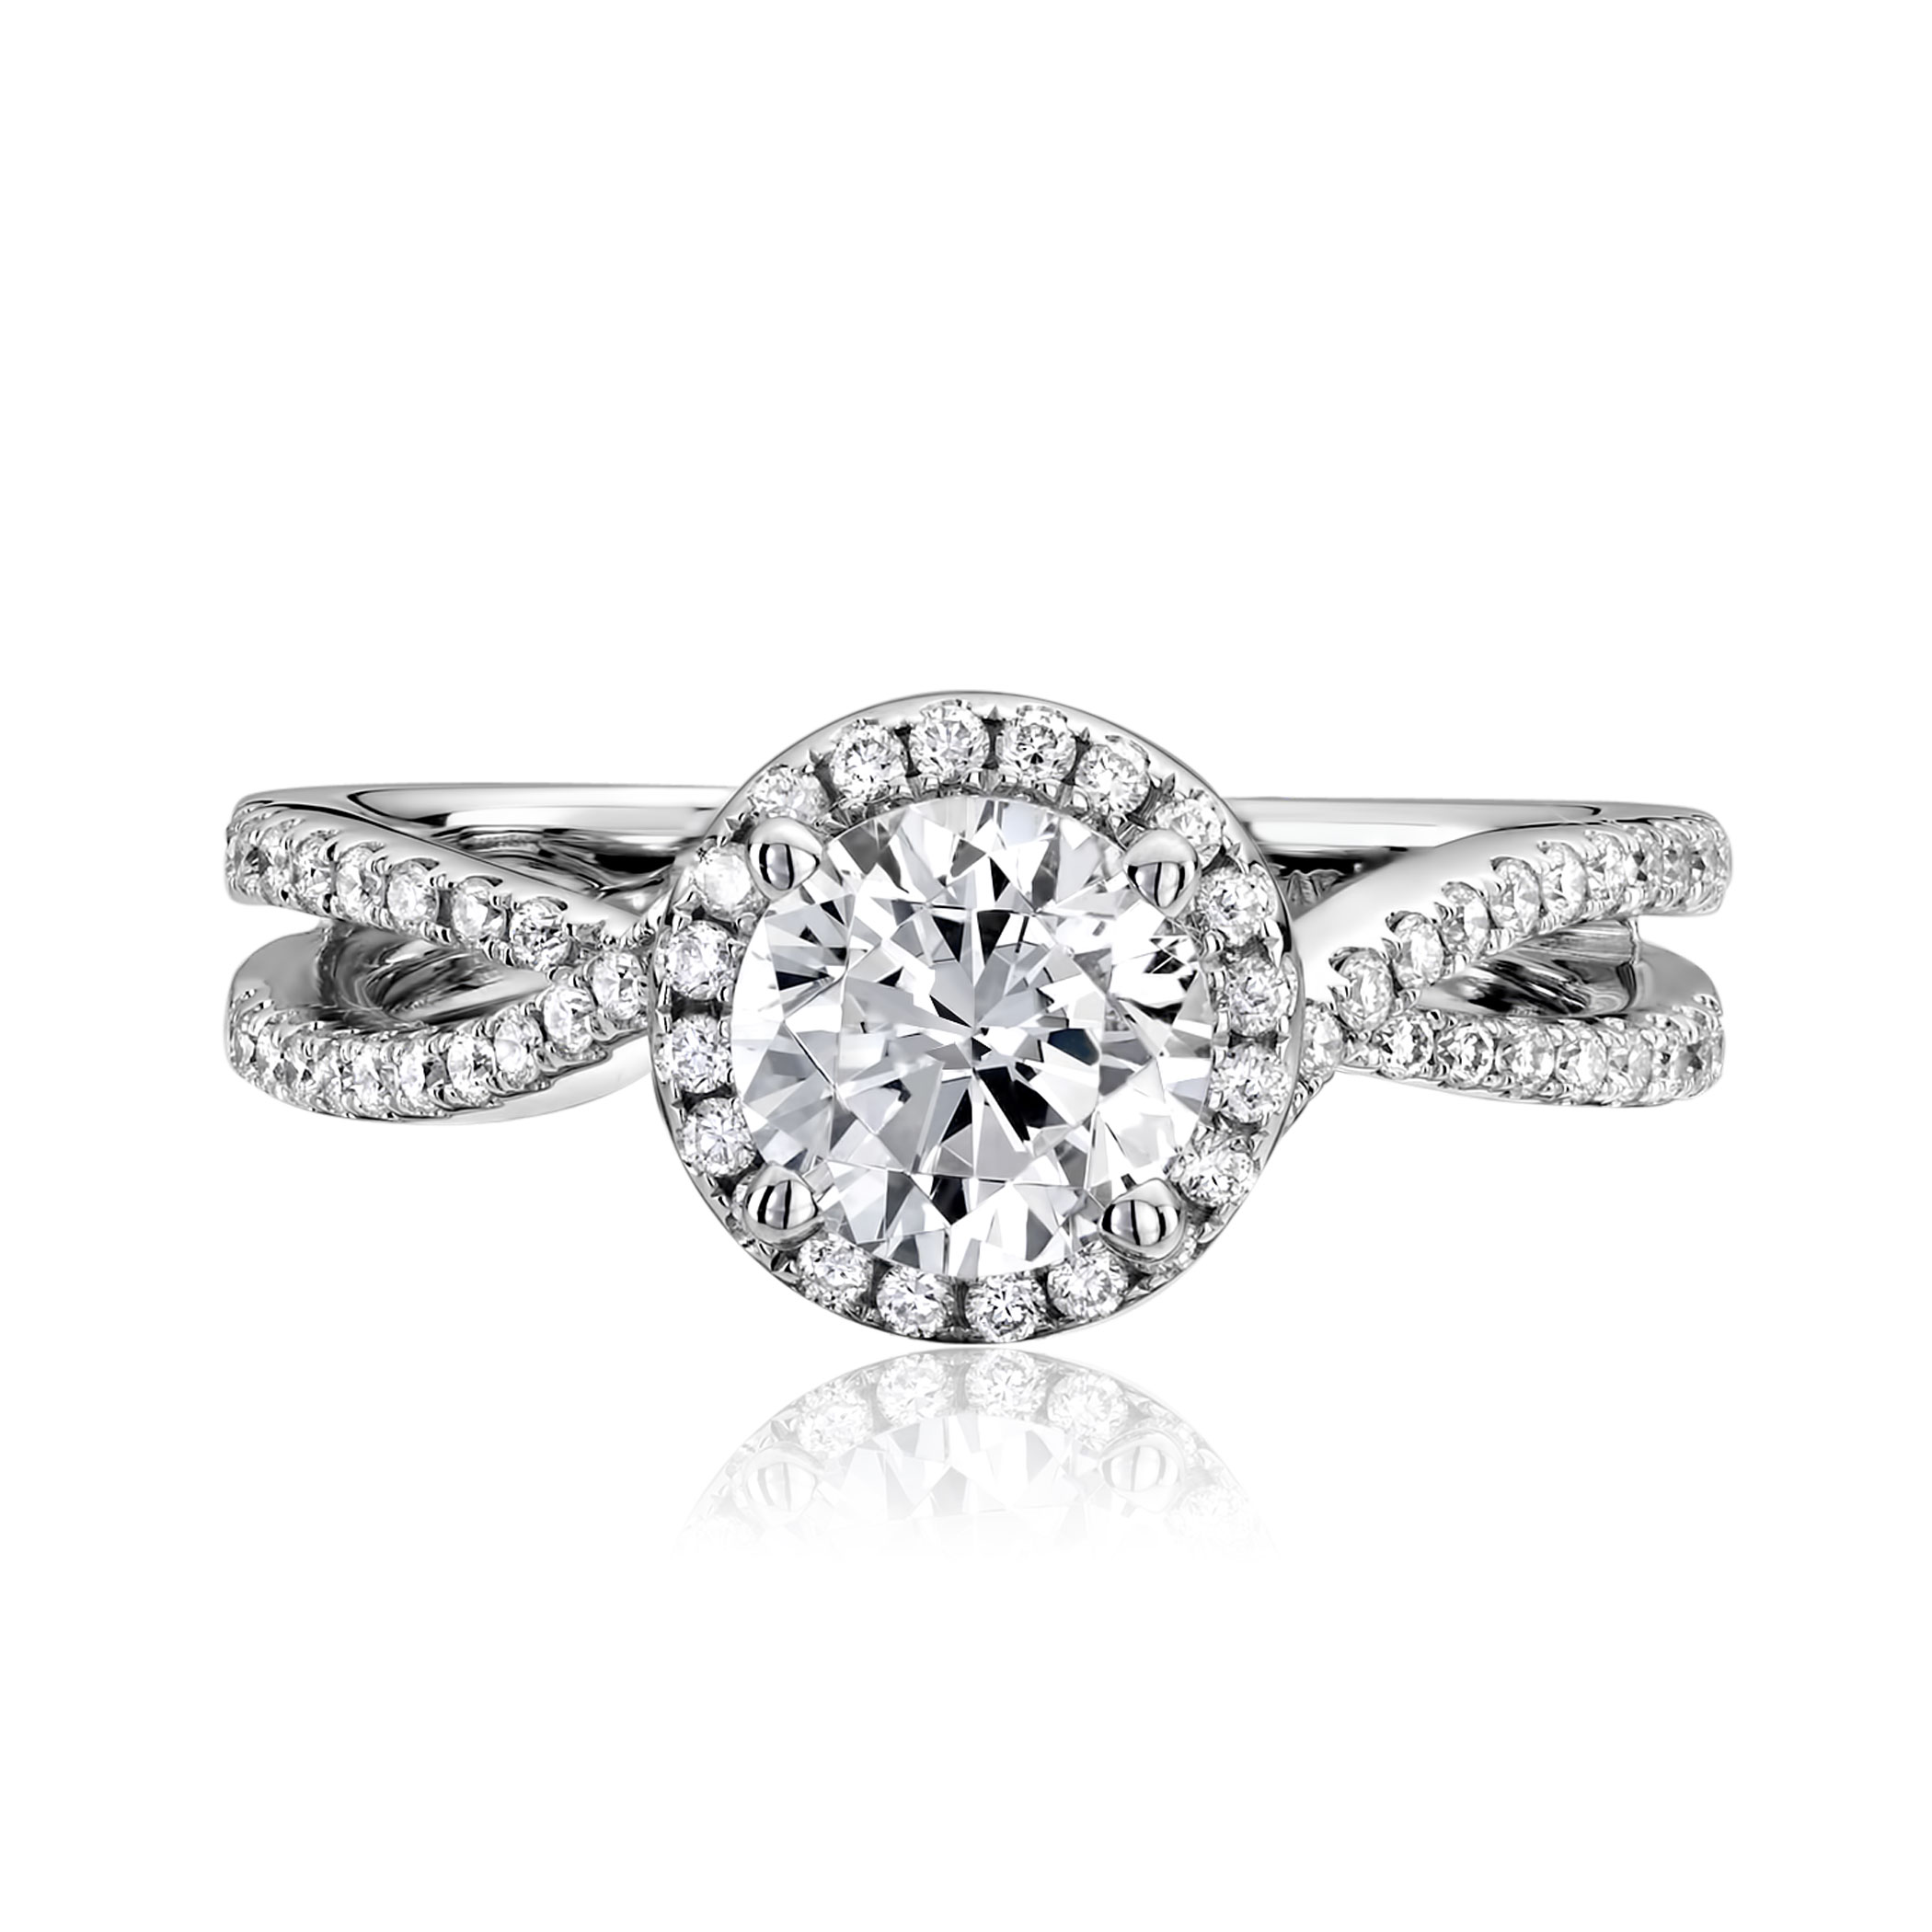 pinterest best kay rings engagement scott of scottkaybride com econtechvn